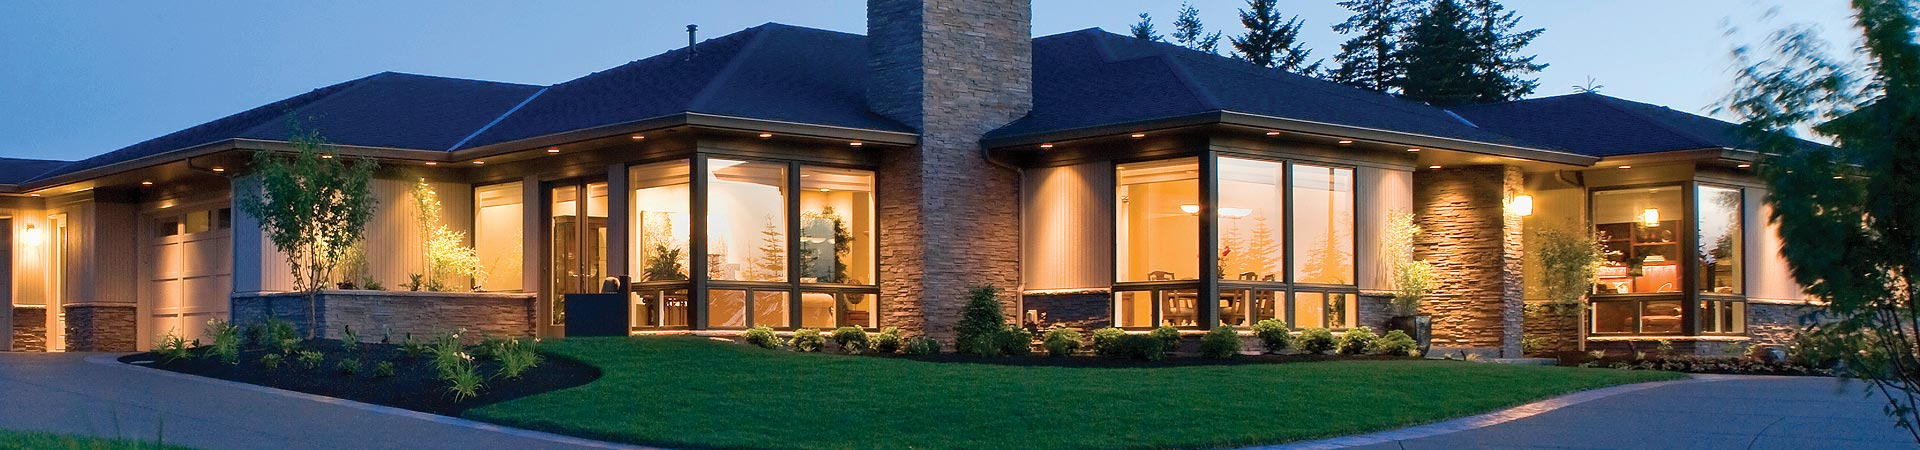 Milgard windows and patio doors